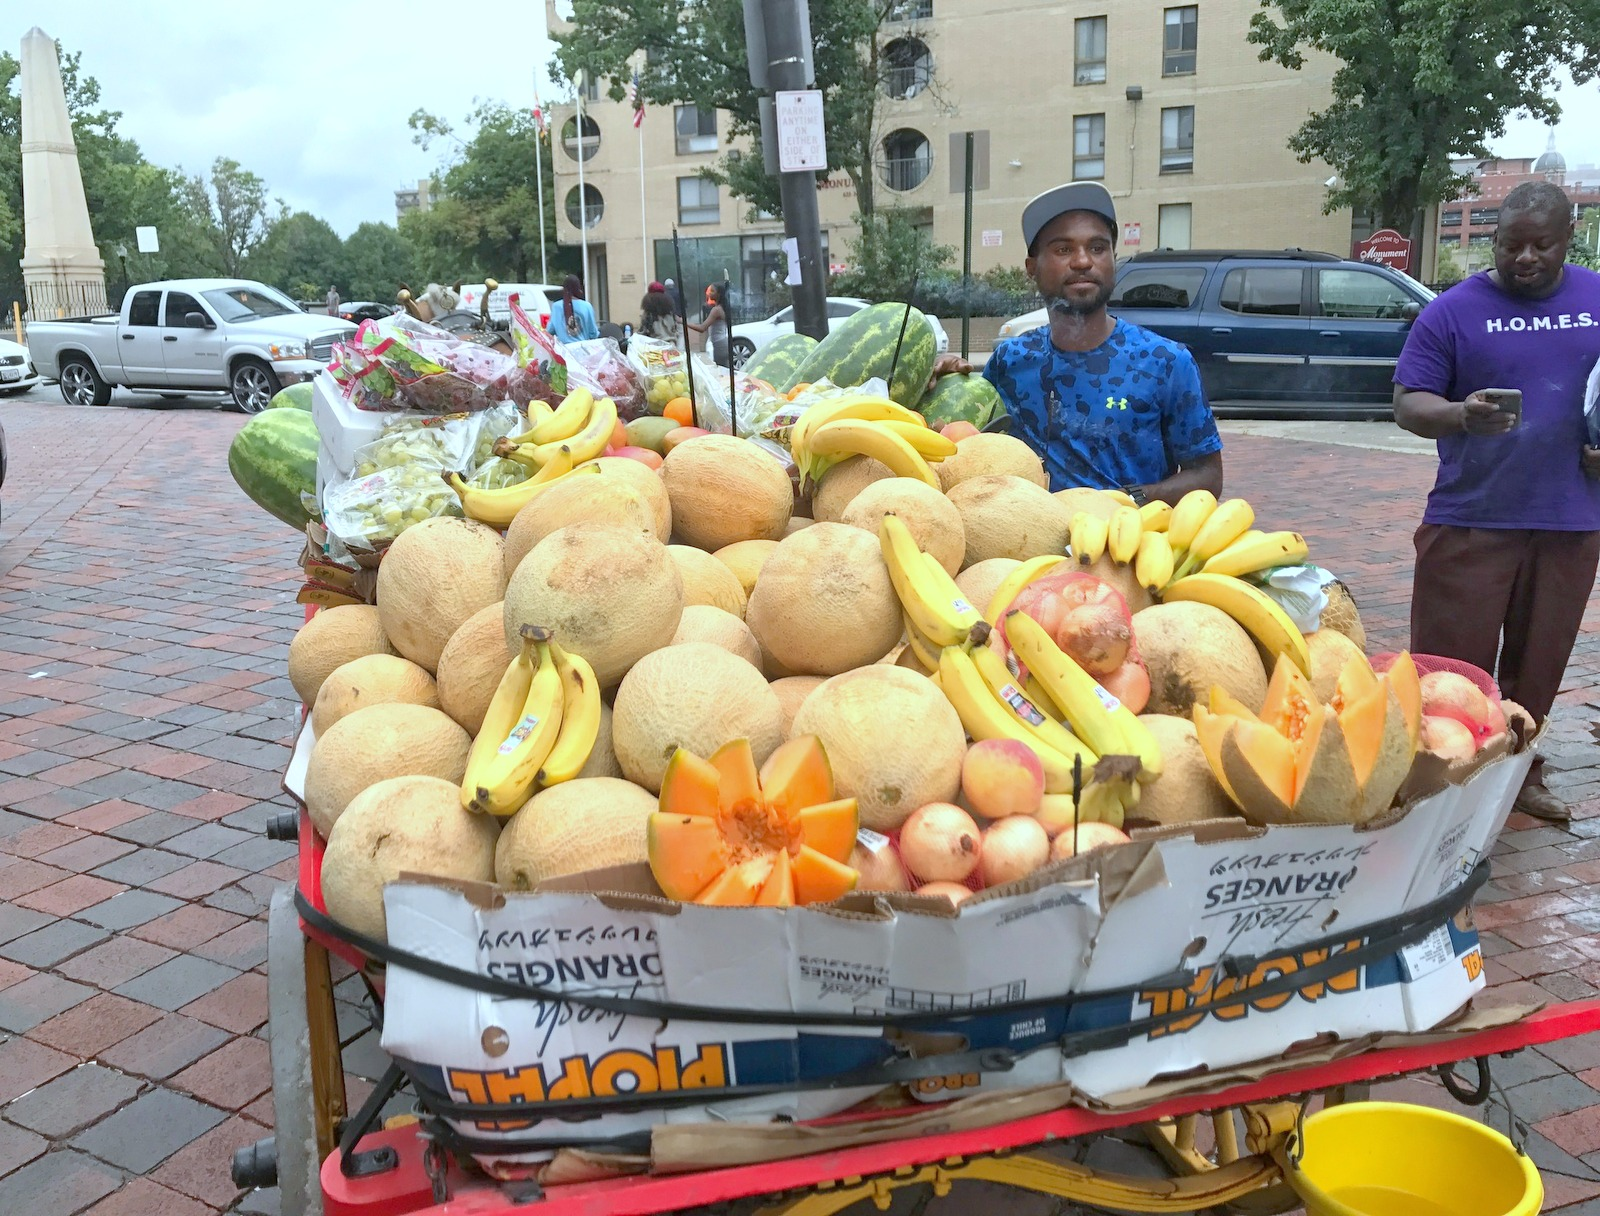 Cantaloupes, bananas, watermelons and peaches are colorfully displayed on the wagon. (Mark Reutter)